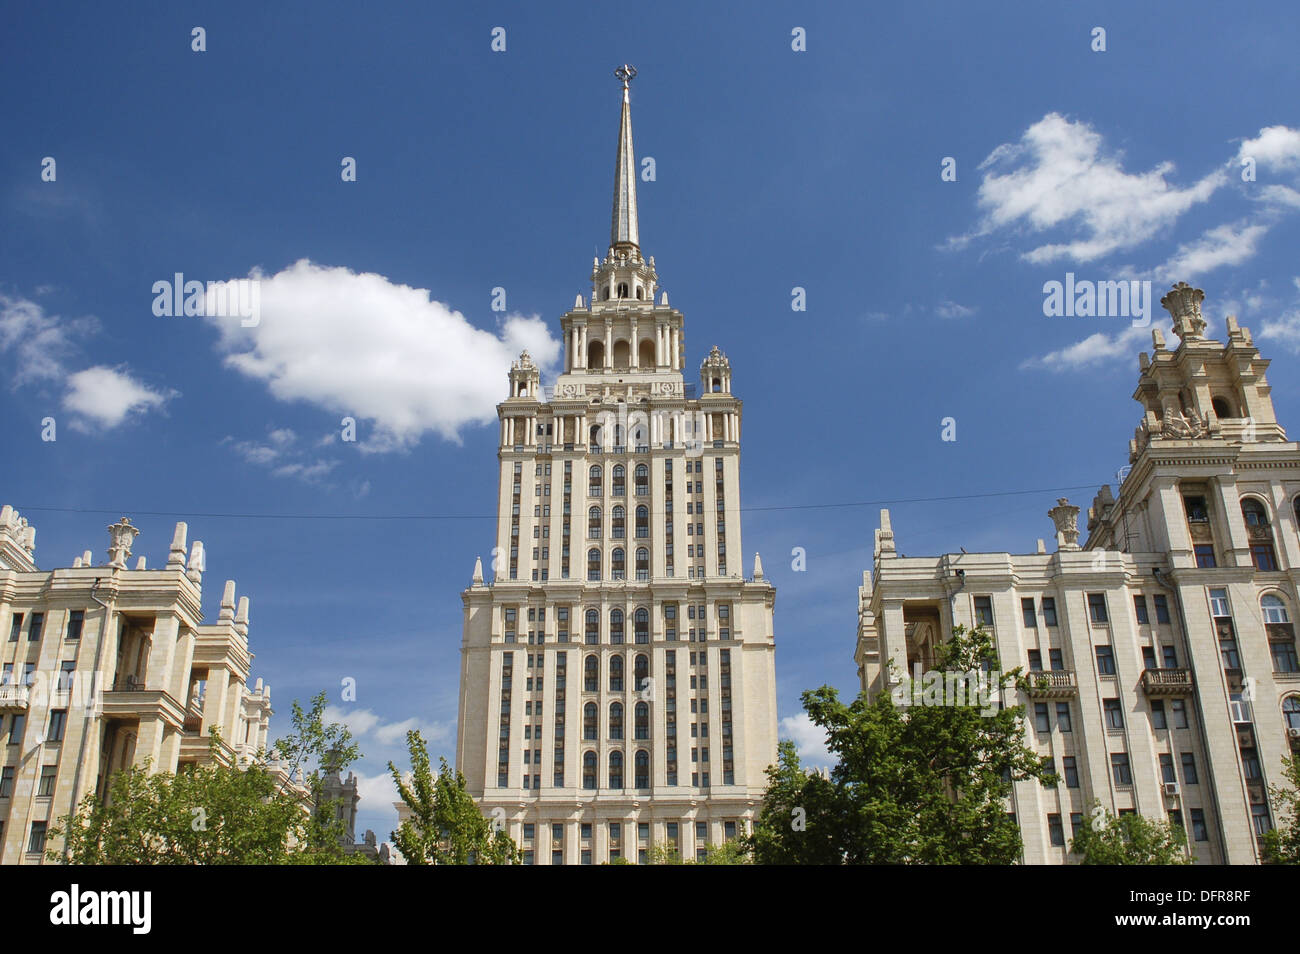 Stalinist architecture, Ukraina Hotel, Moscow, Russia Stock Photo